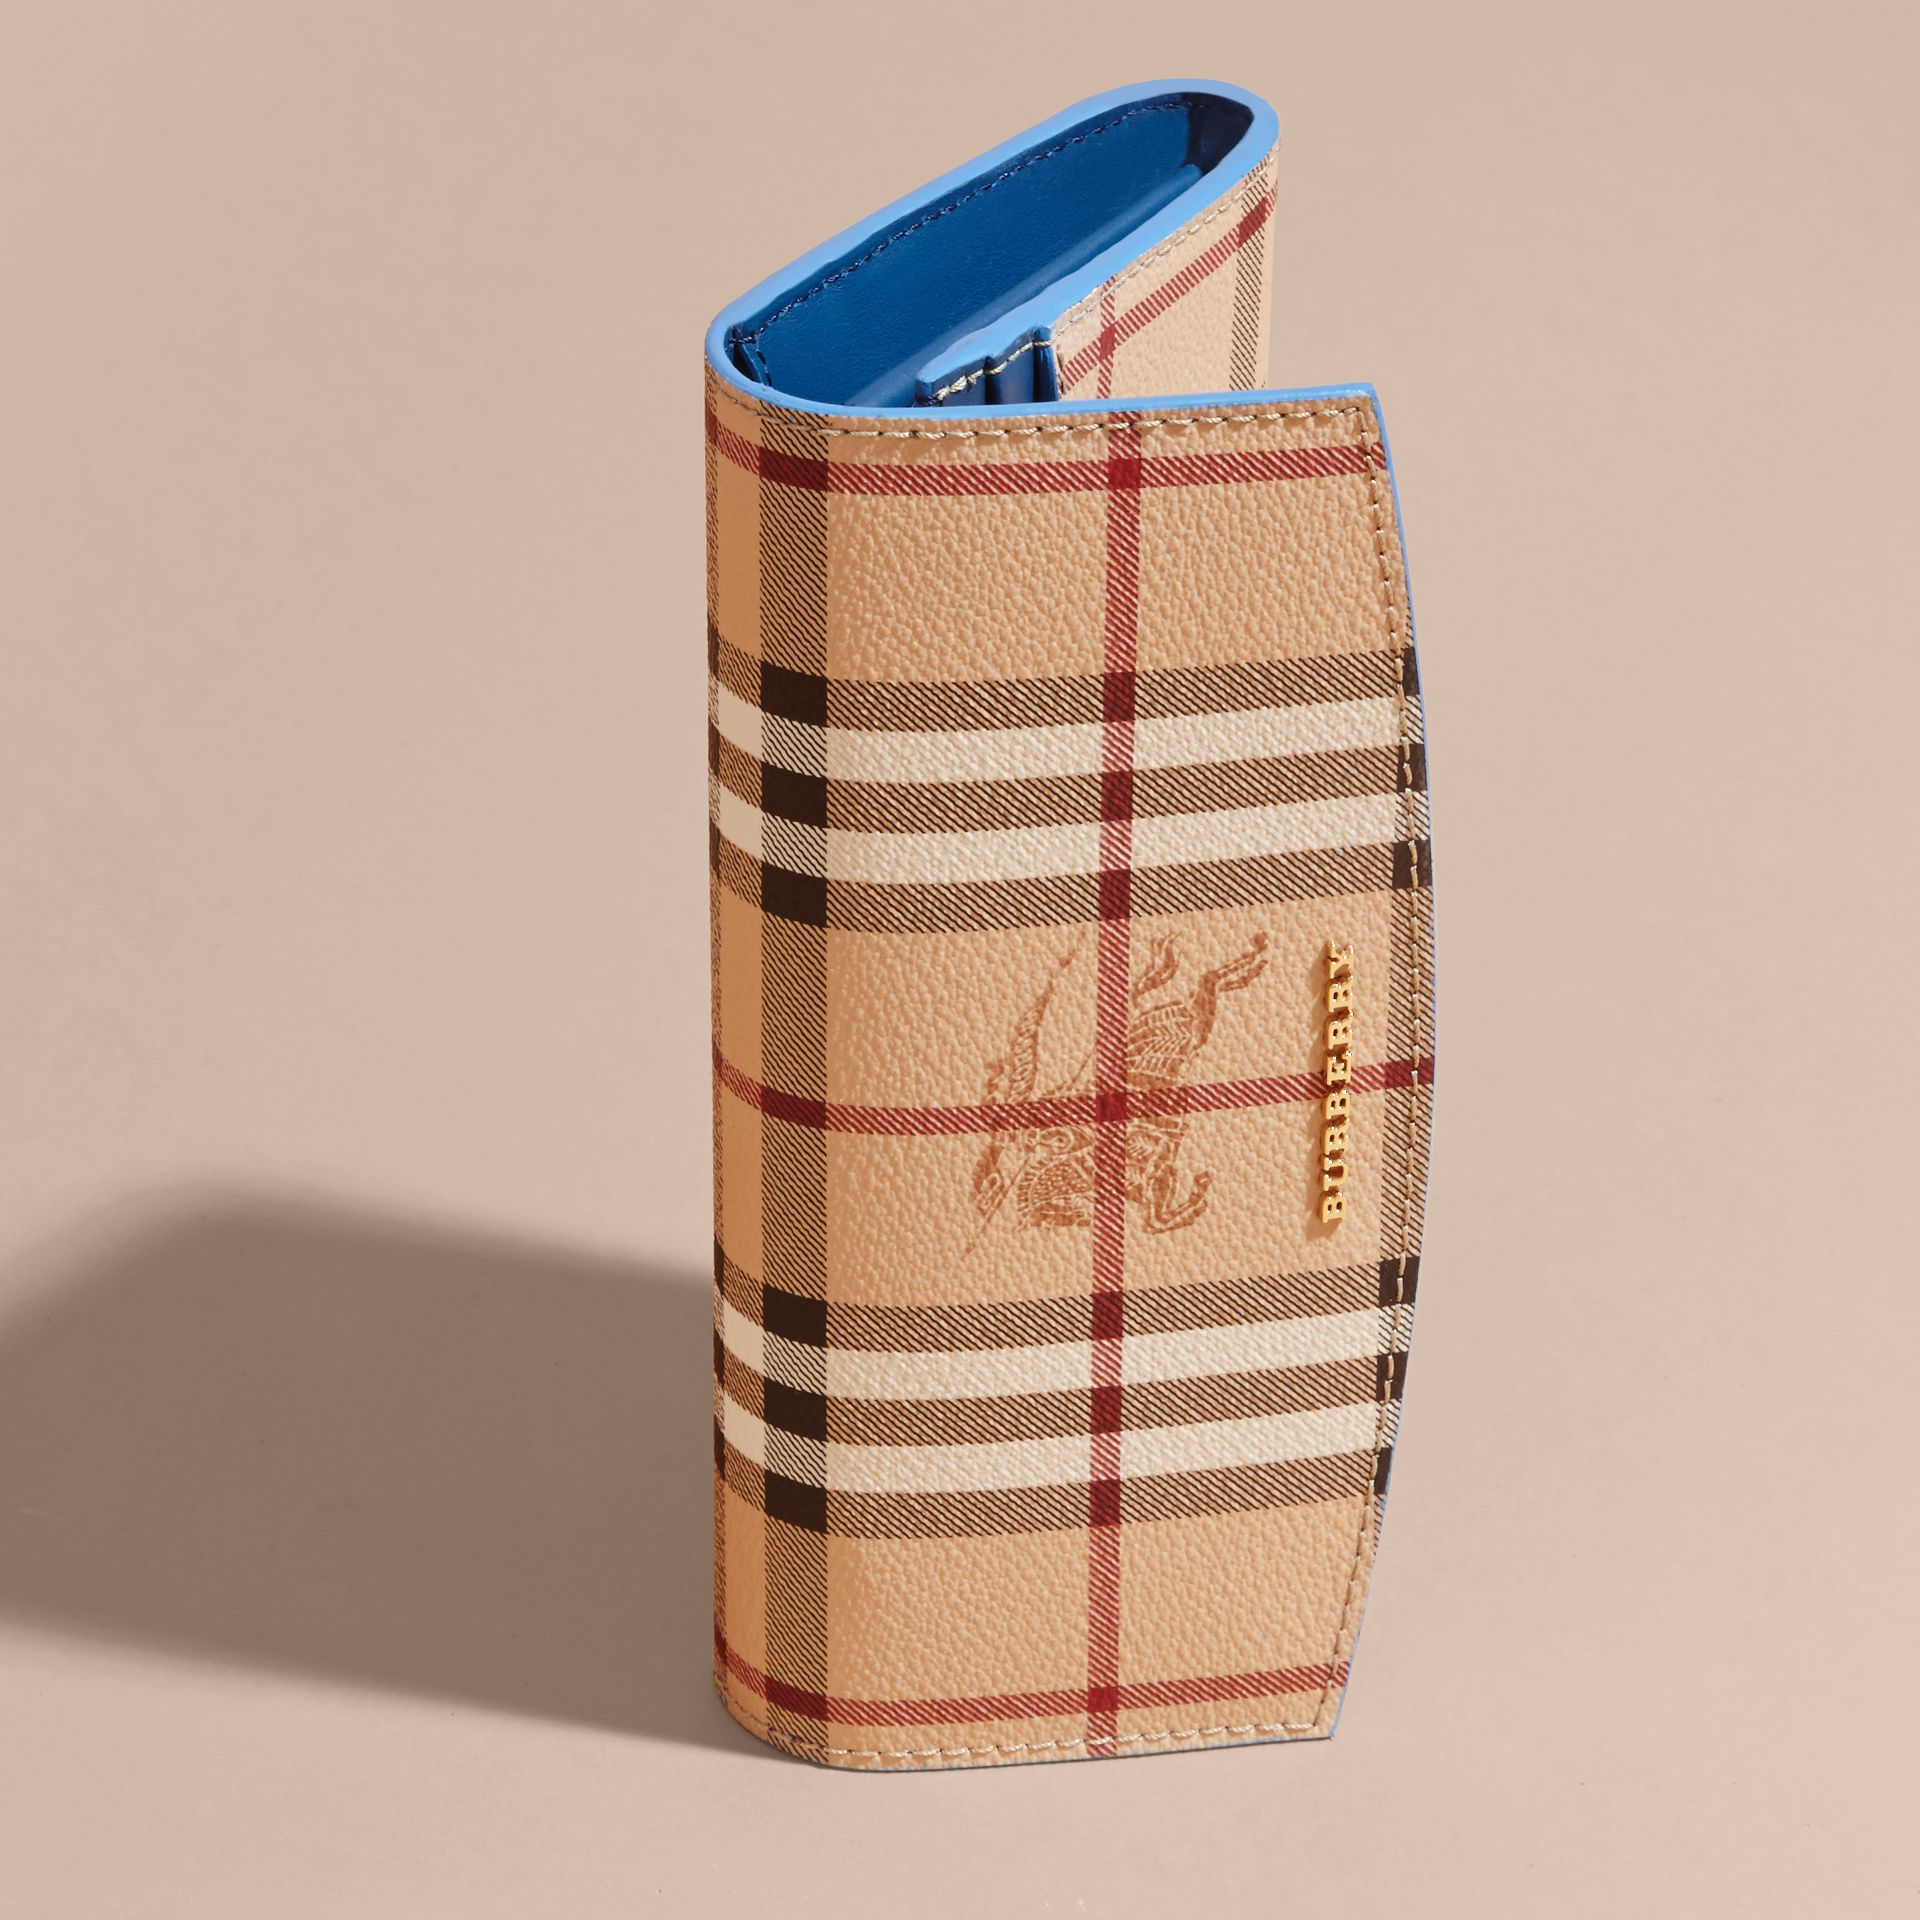 Haymarket Check and Leather Continental Wallet in Mineral Blue - Women | Burberry - gallery image 3